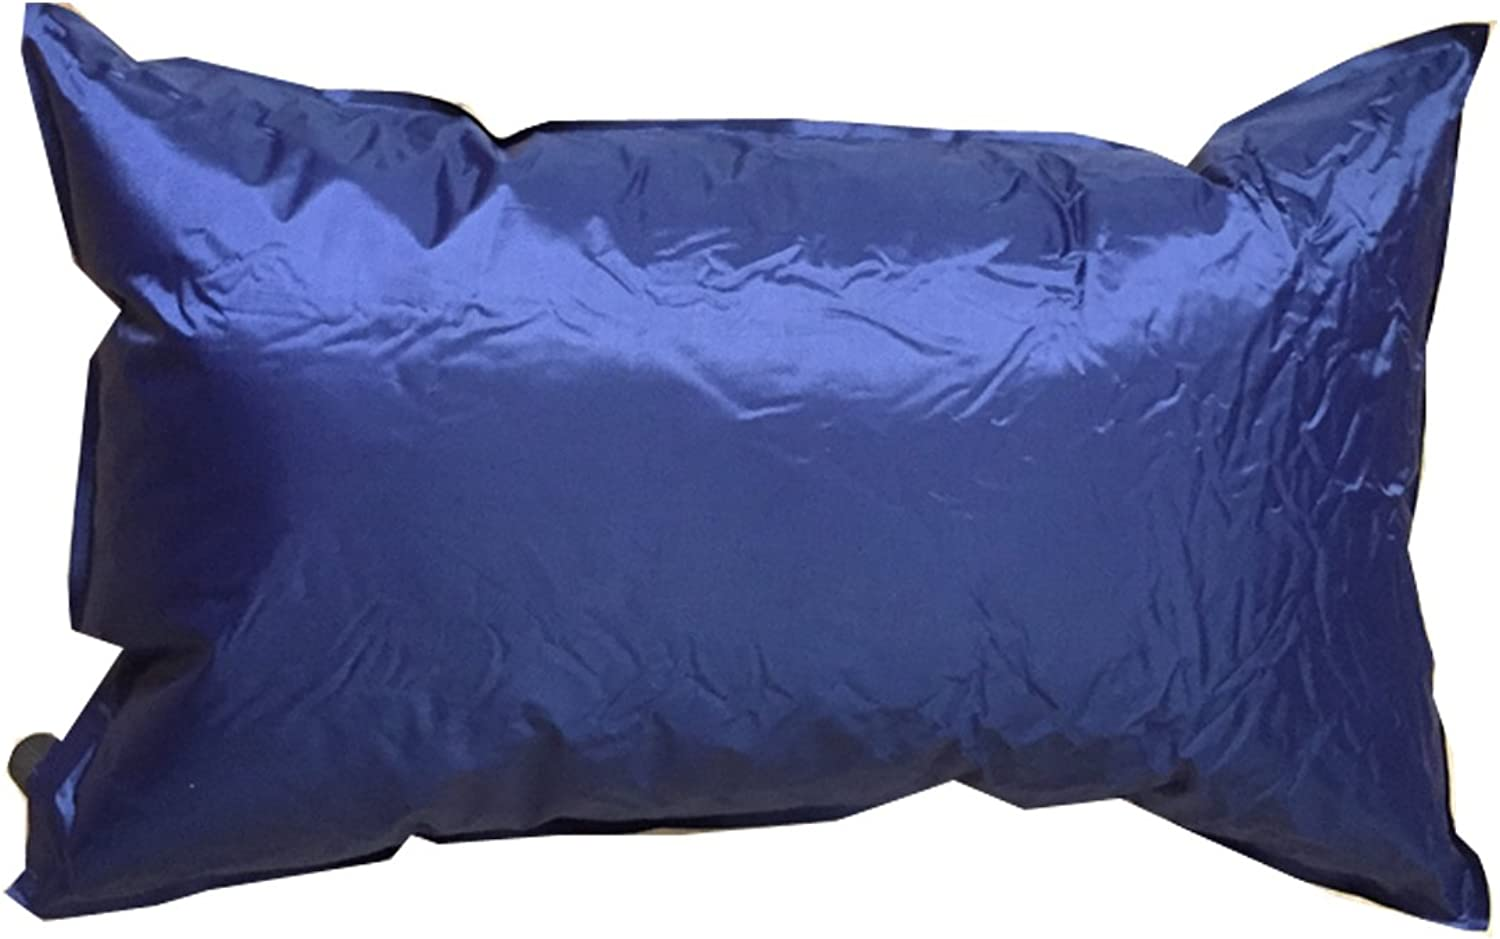 Camping Waterproof Foldable Pillow Self Inflating,Particular for Outdoor Trips,Hiking, Beach, Travel, Drive